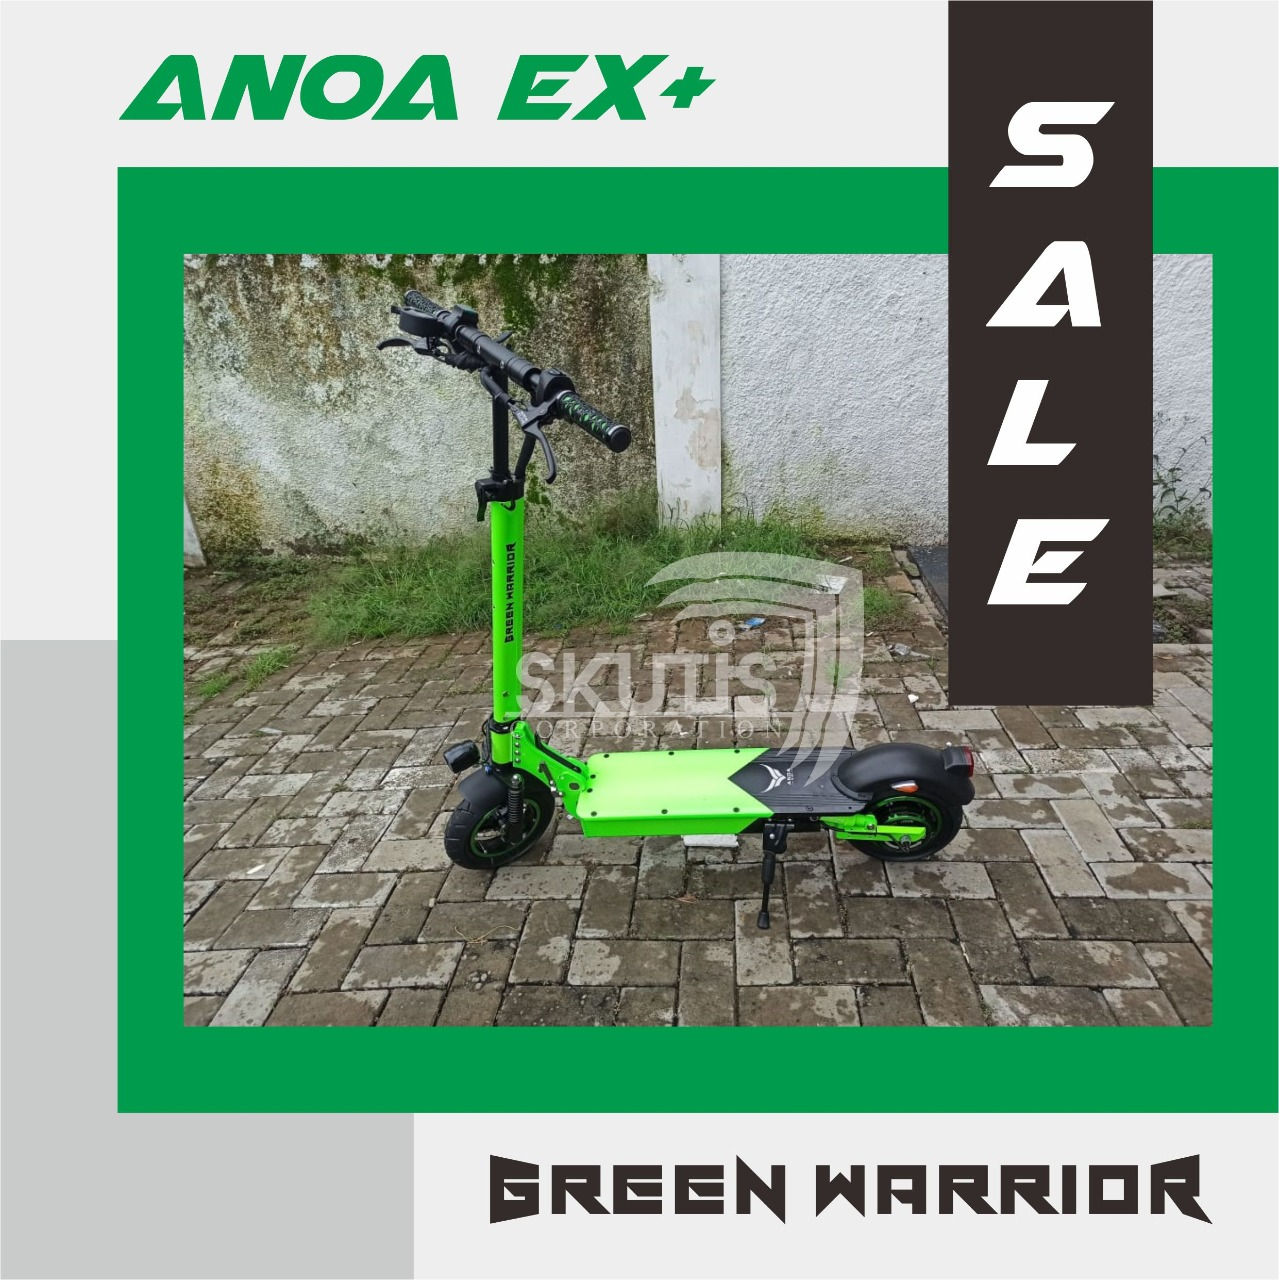 Green Warrior 4 - Green Warrior - Promotion